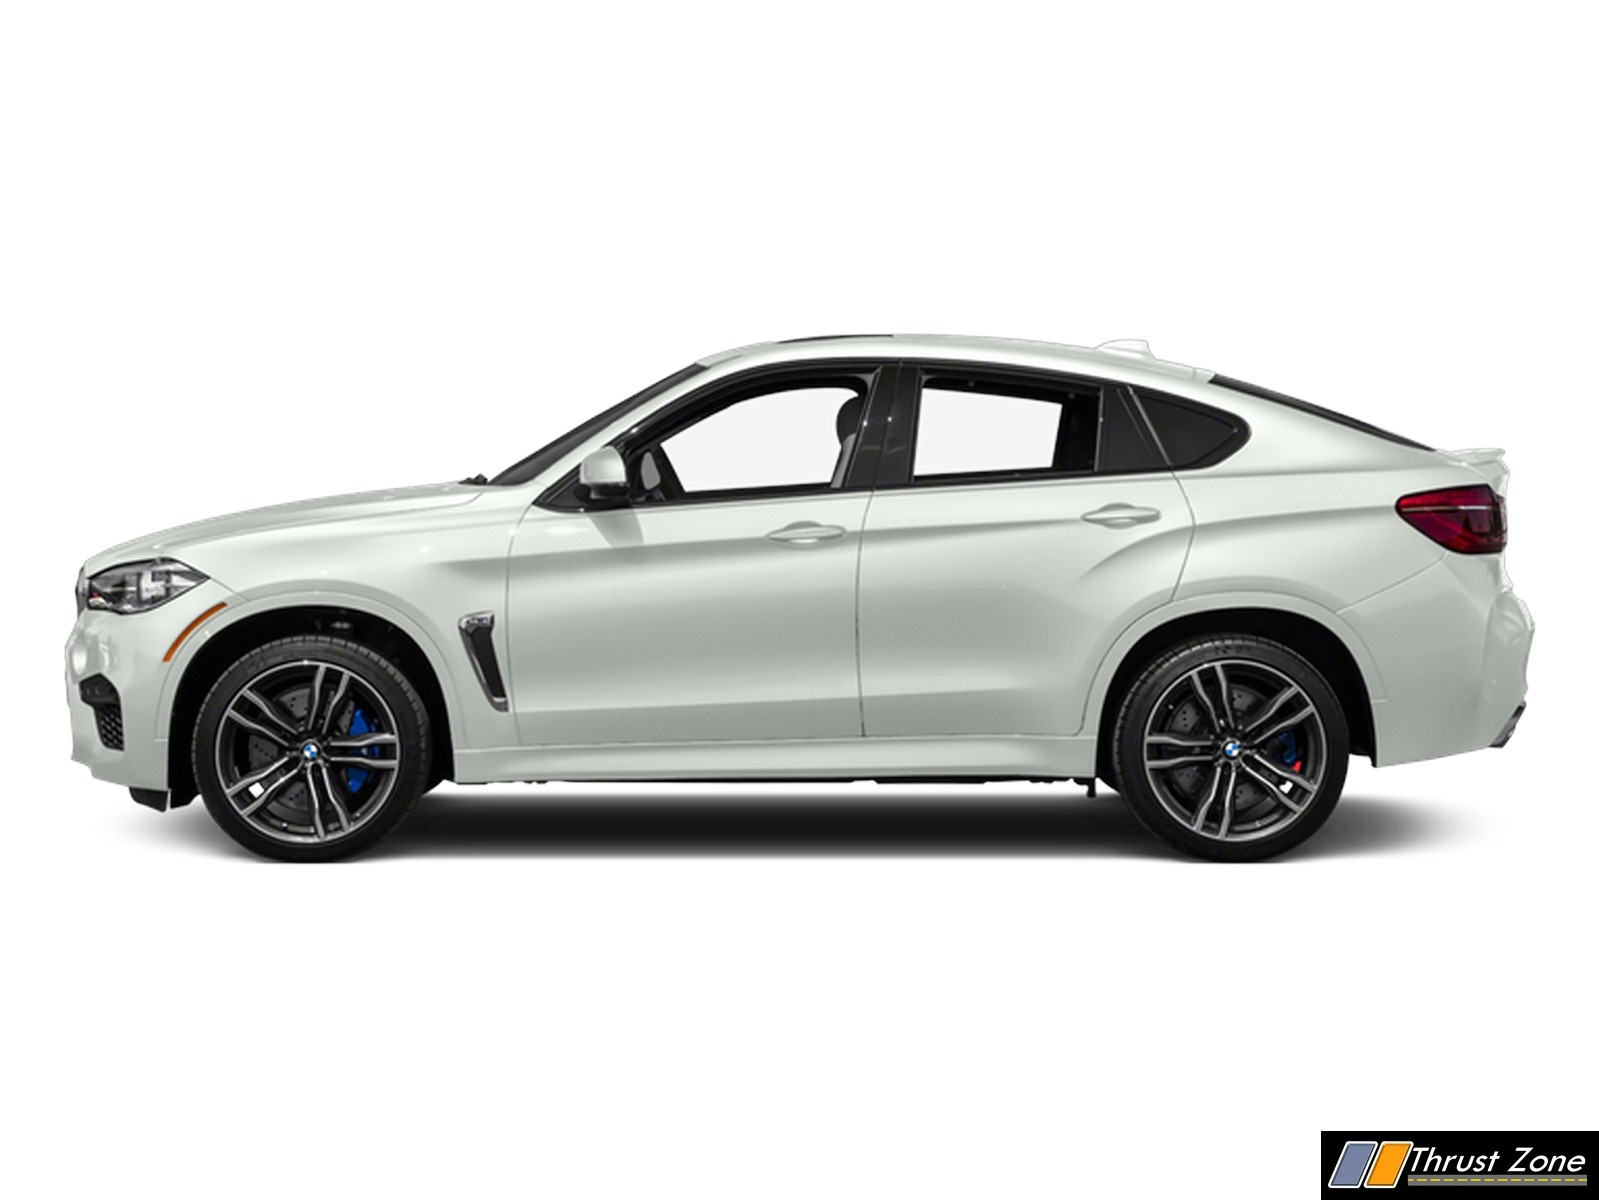 2018 bmw x6 msport launched with petrol engine at auto expo. Black Bedroom Furniture Sets. Home Design Ideas